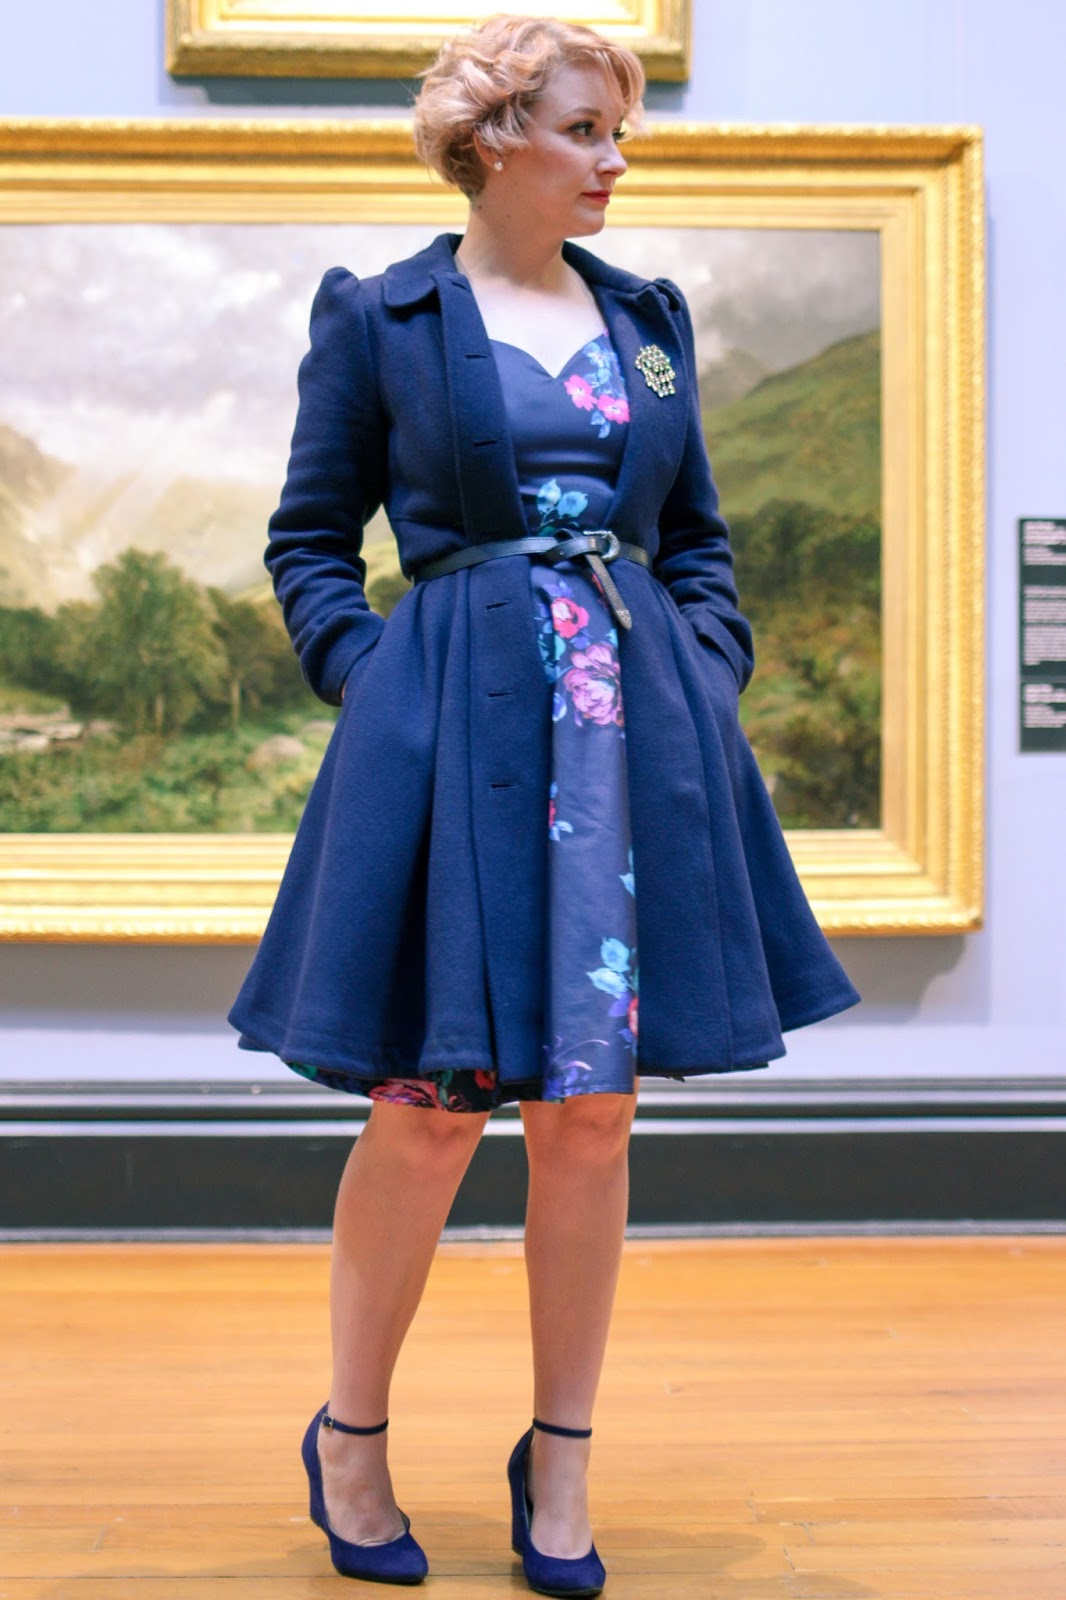 Finding Femme at the Ballarat Fine Art Gallery wearing belted Review Australia navy coat and blue floral dress with blue suede Modcloth shoes.